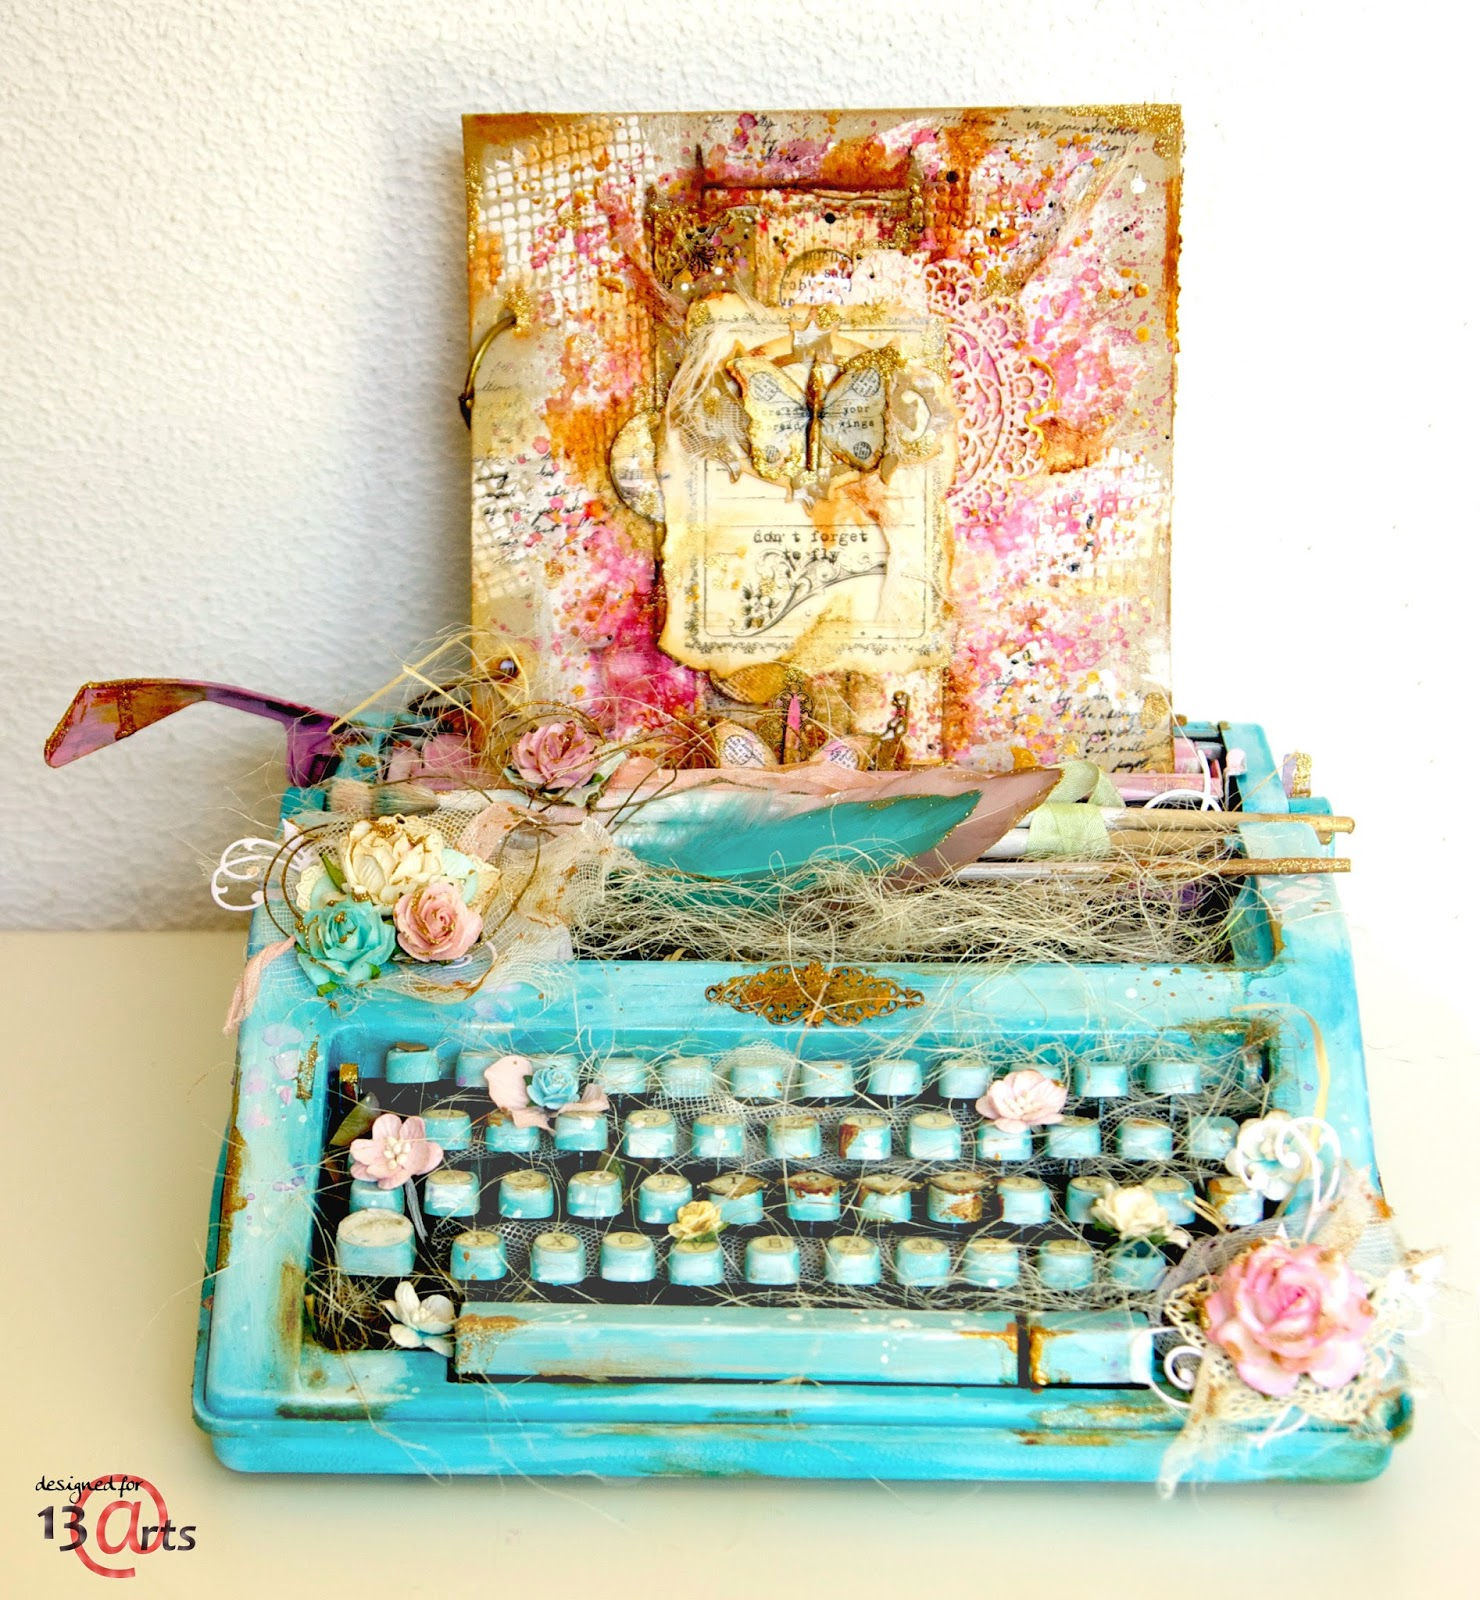 Altered  typewriter in my magical world